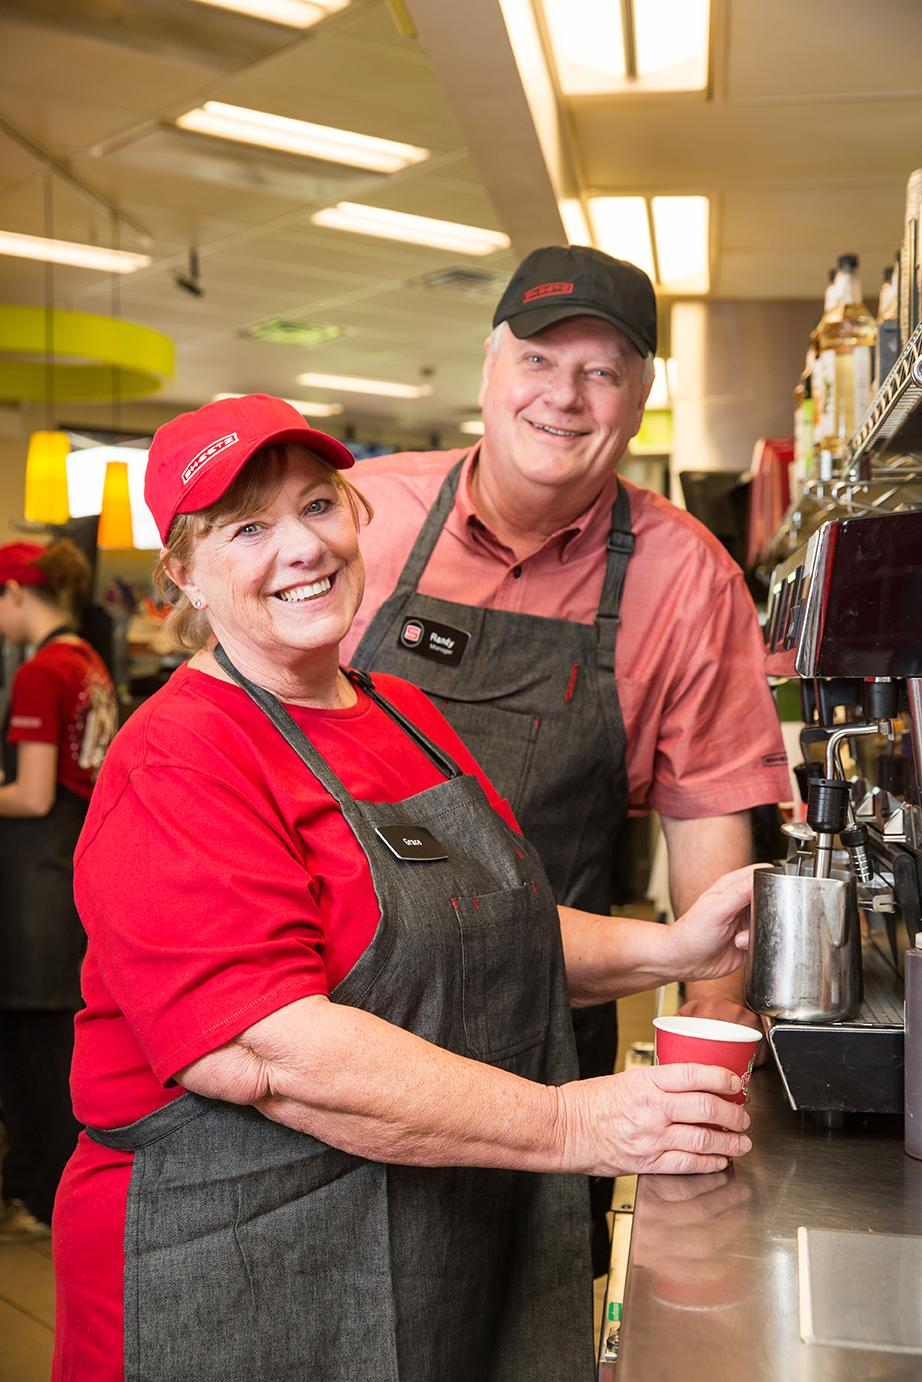 Sheetz, Inc. Employee Photo